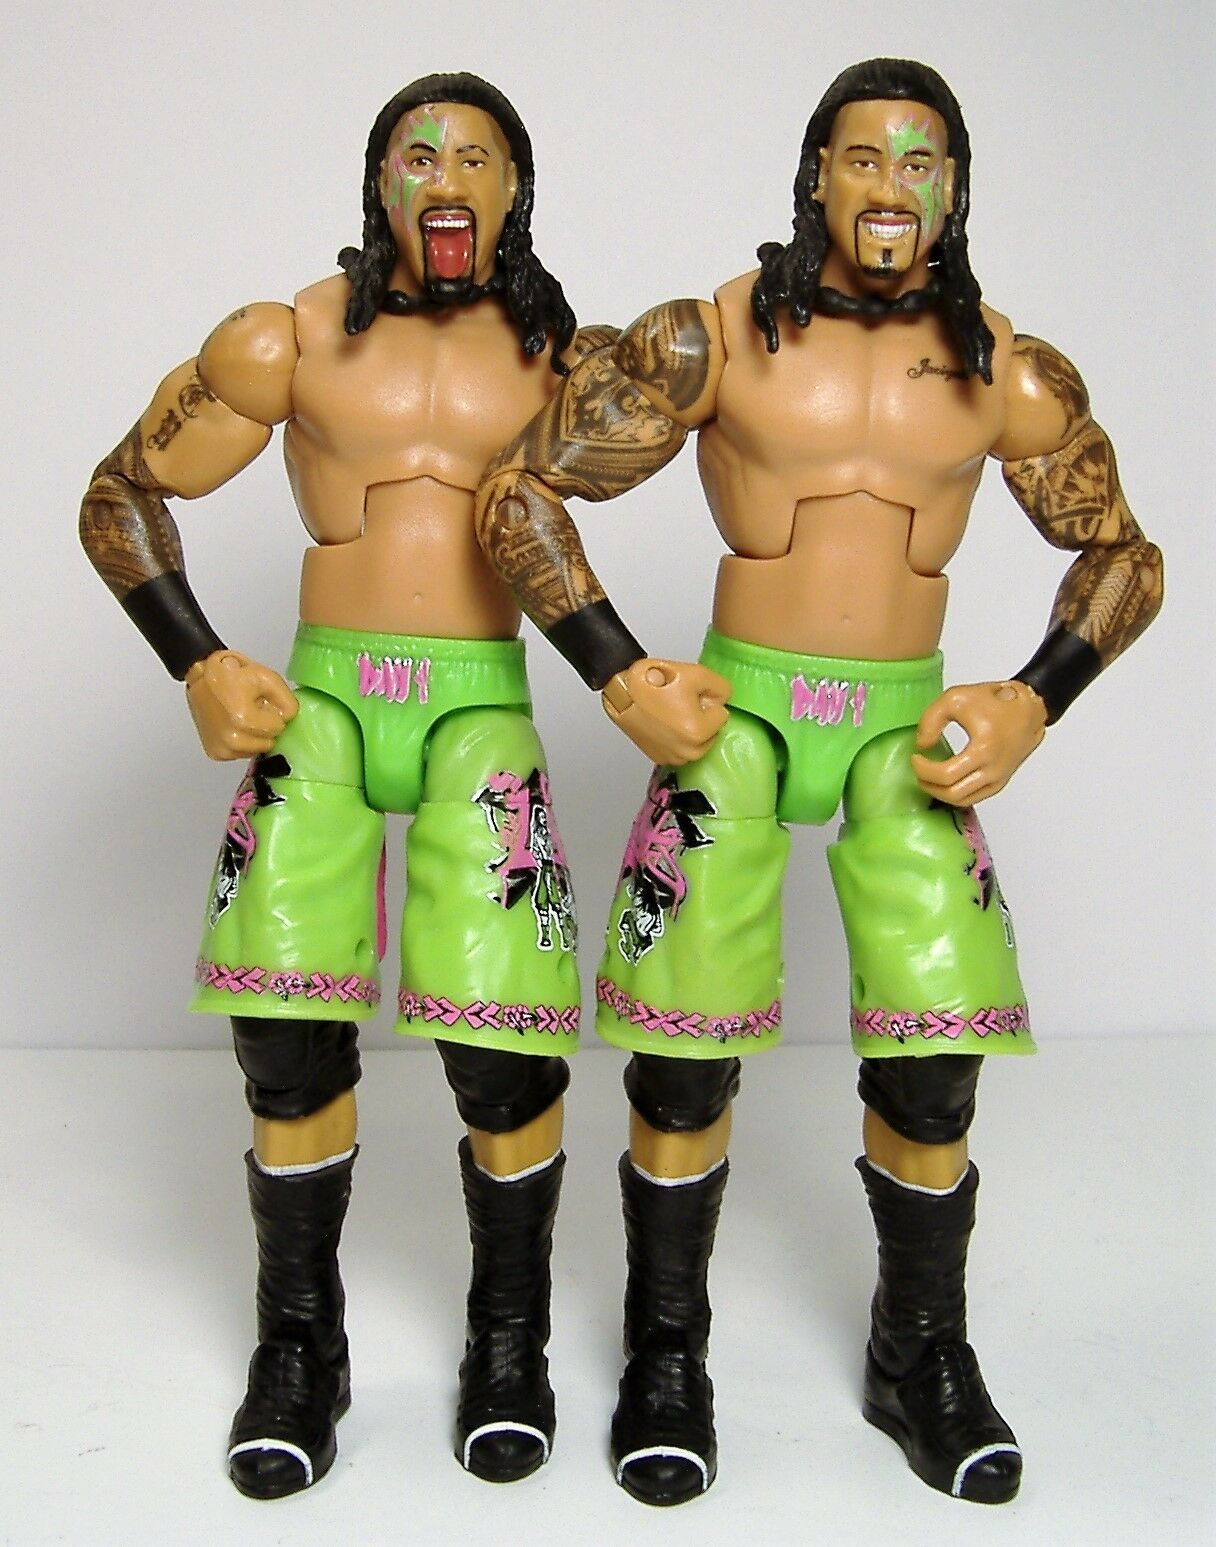 JIMMY & JEY USO ELITE WRESTLING FIGURES USOS TAG TEAM LOOSE SERIES 31 2014 RARE